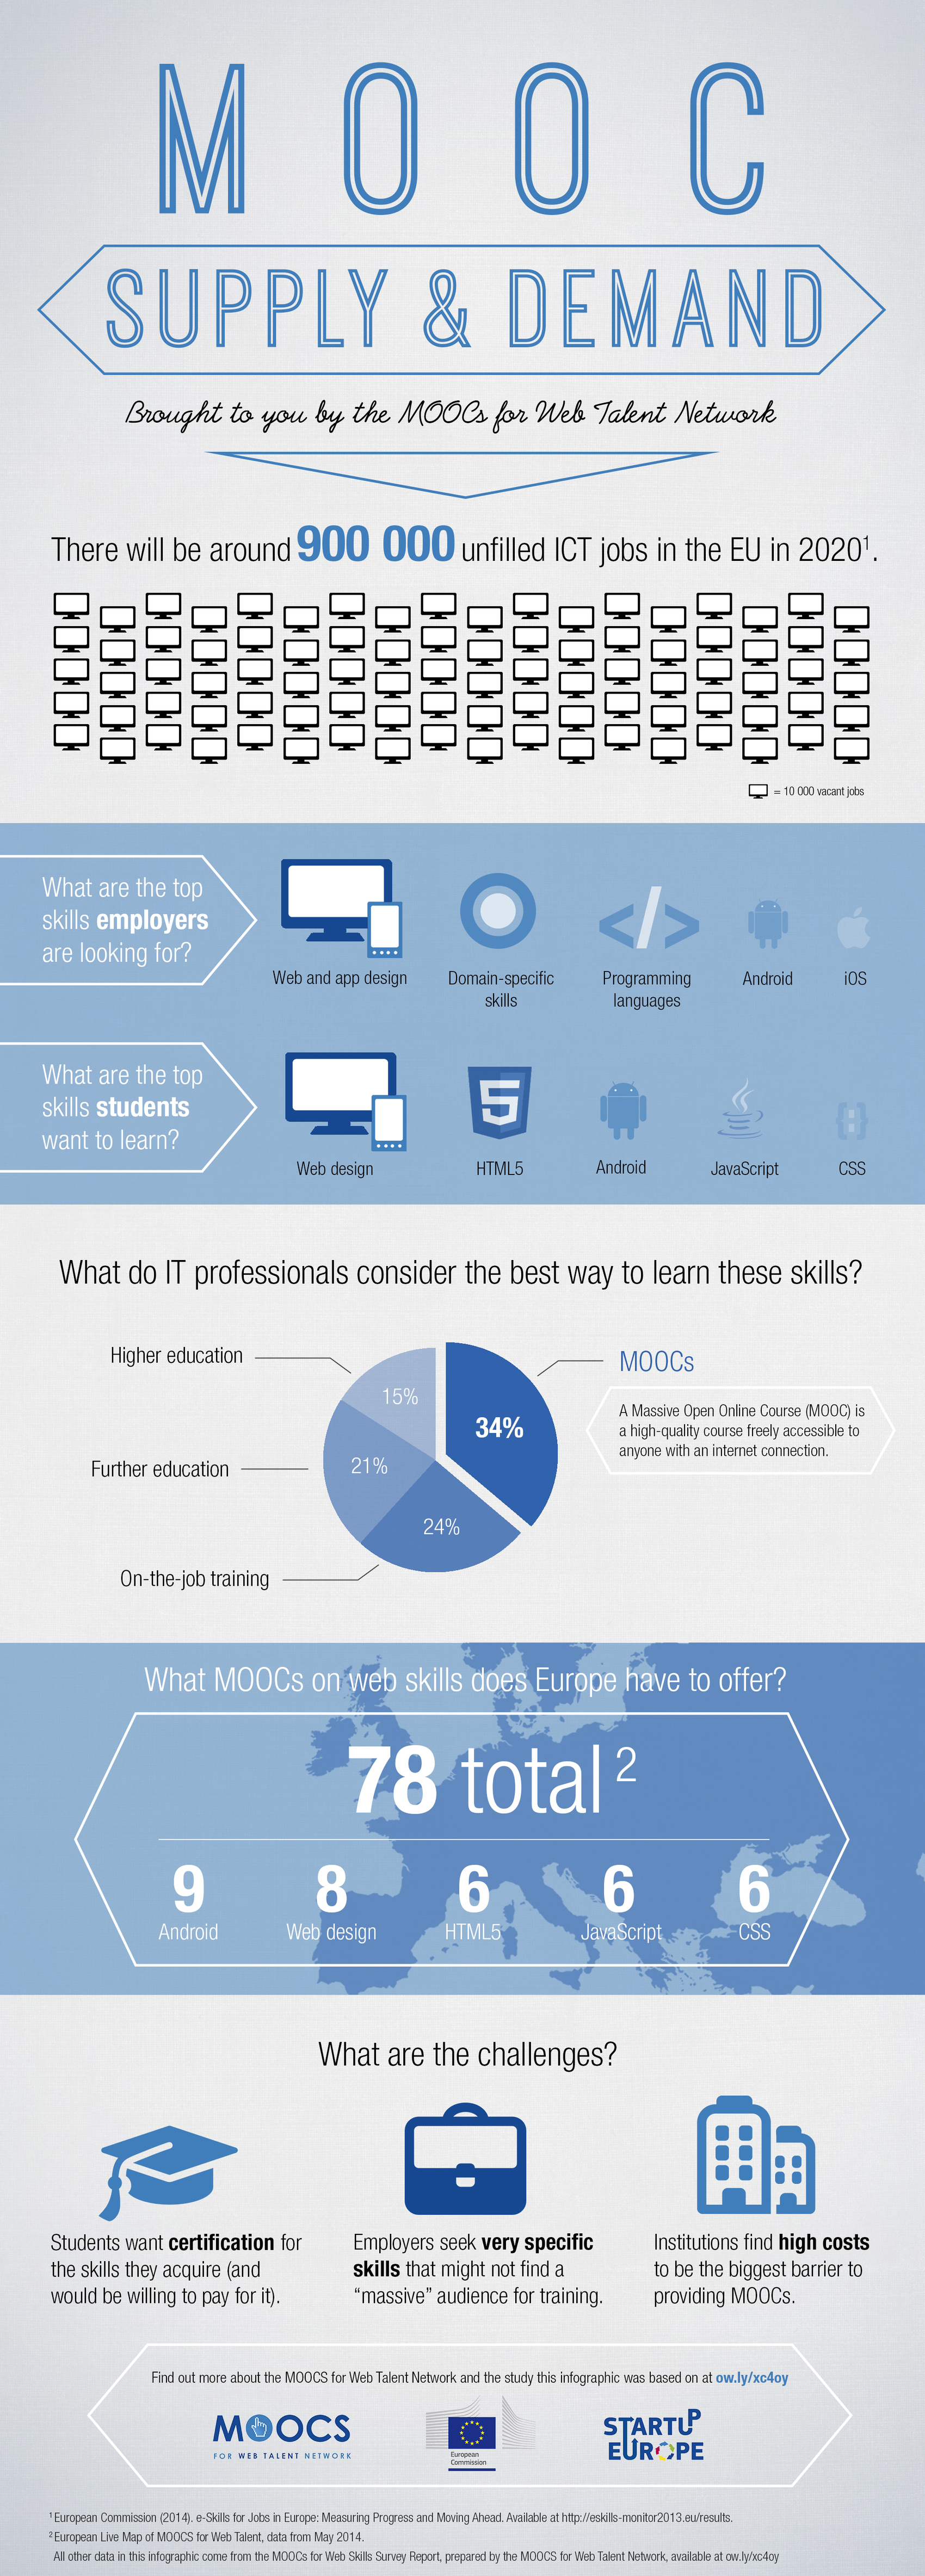 Infographic on the supply and demand of MOOCs f...